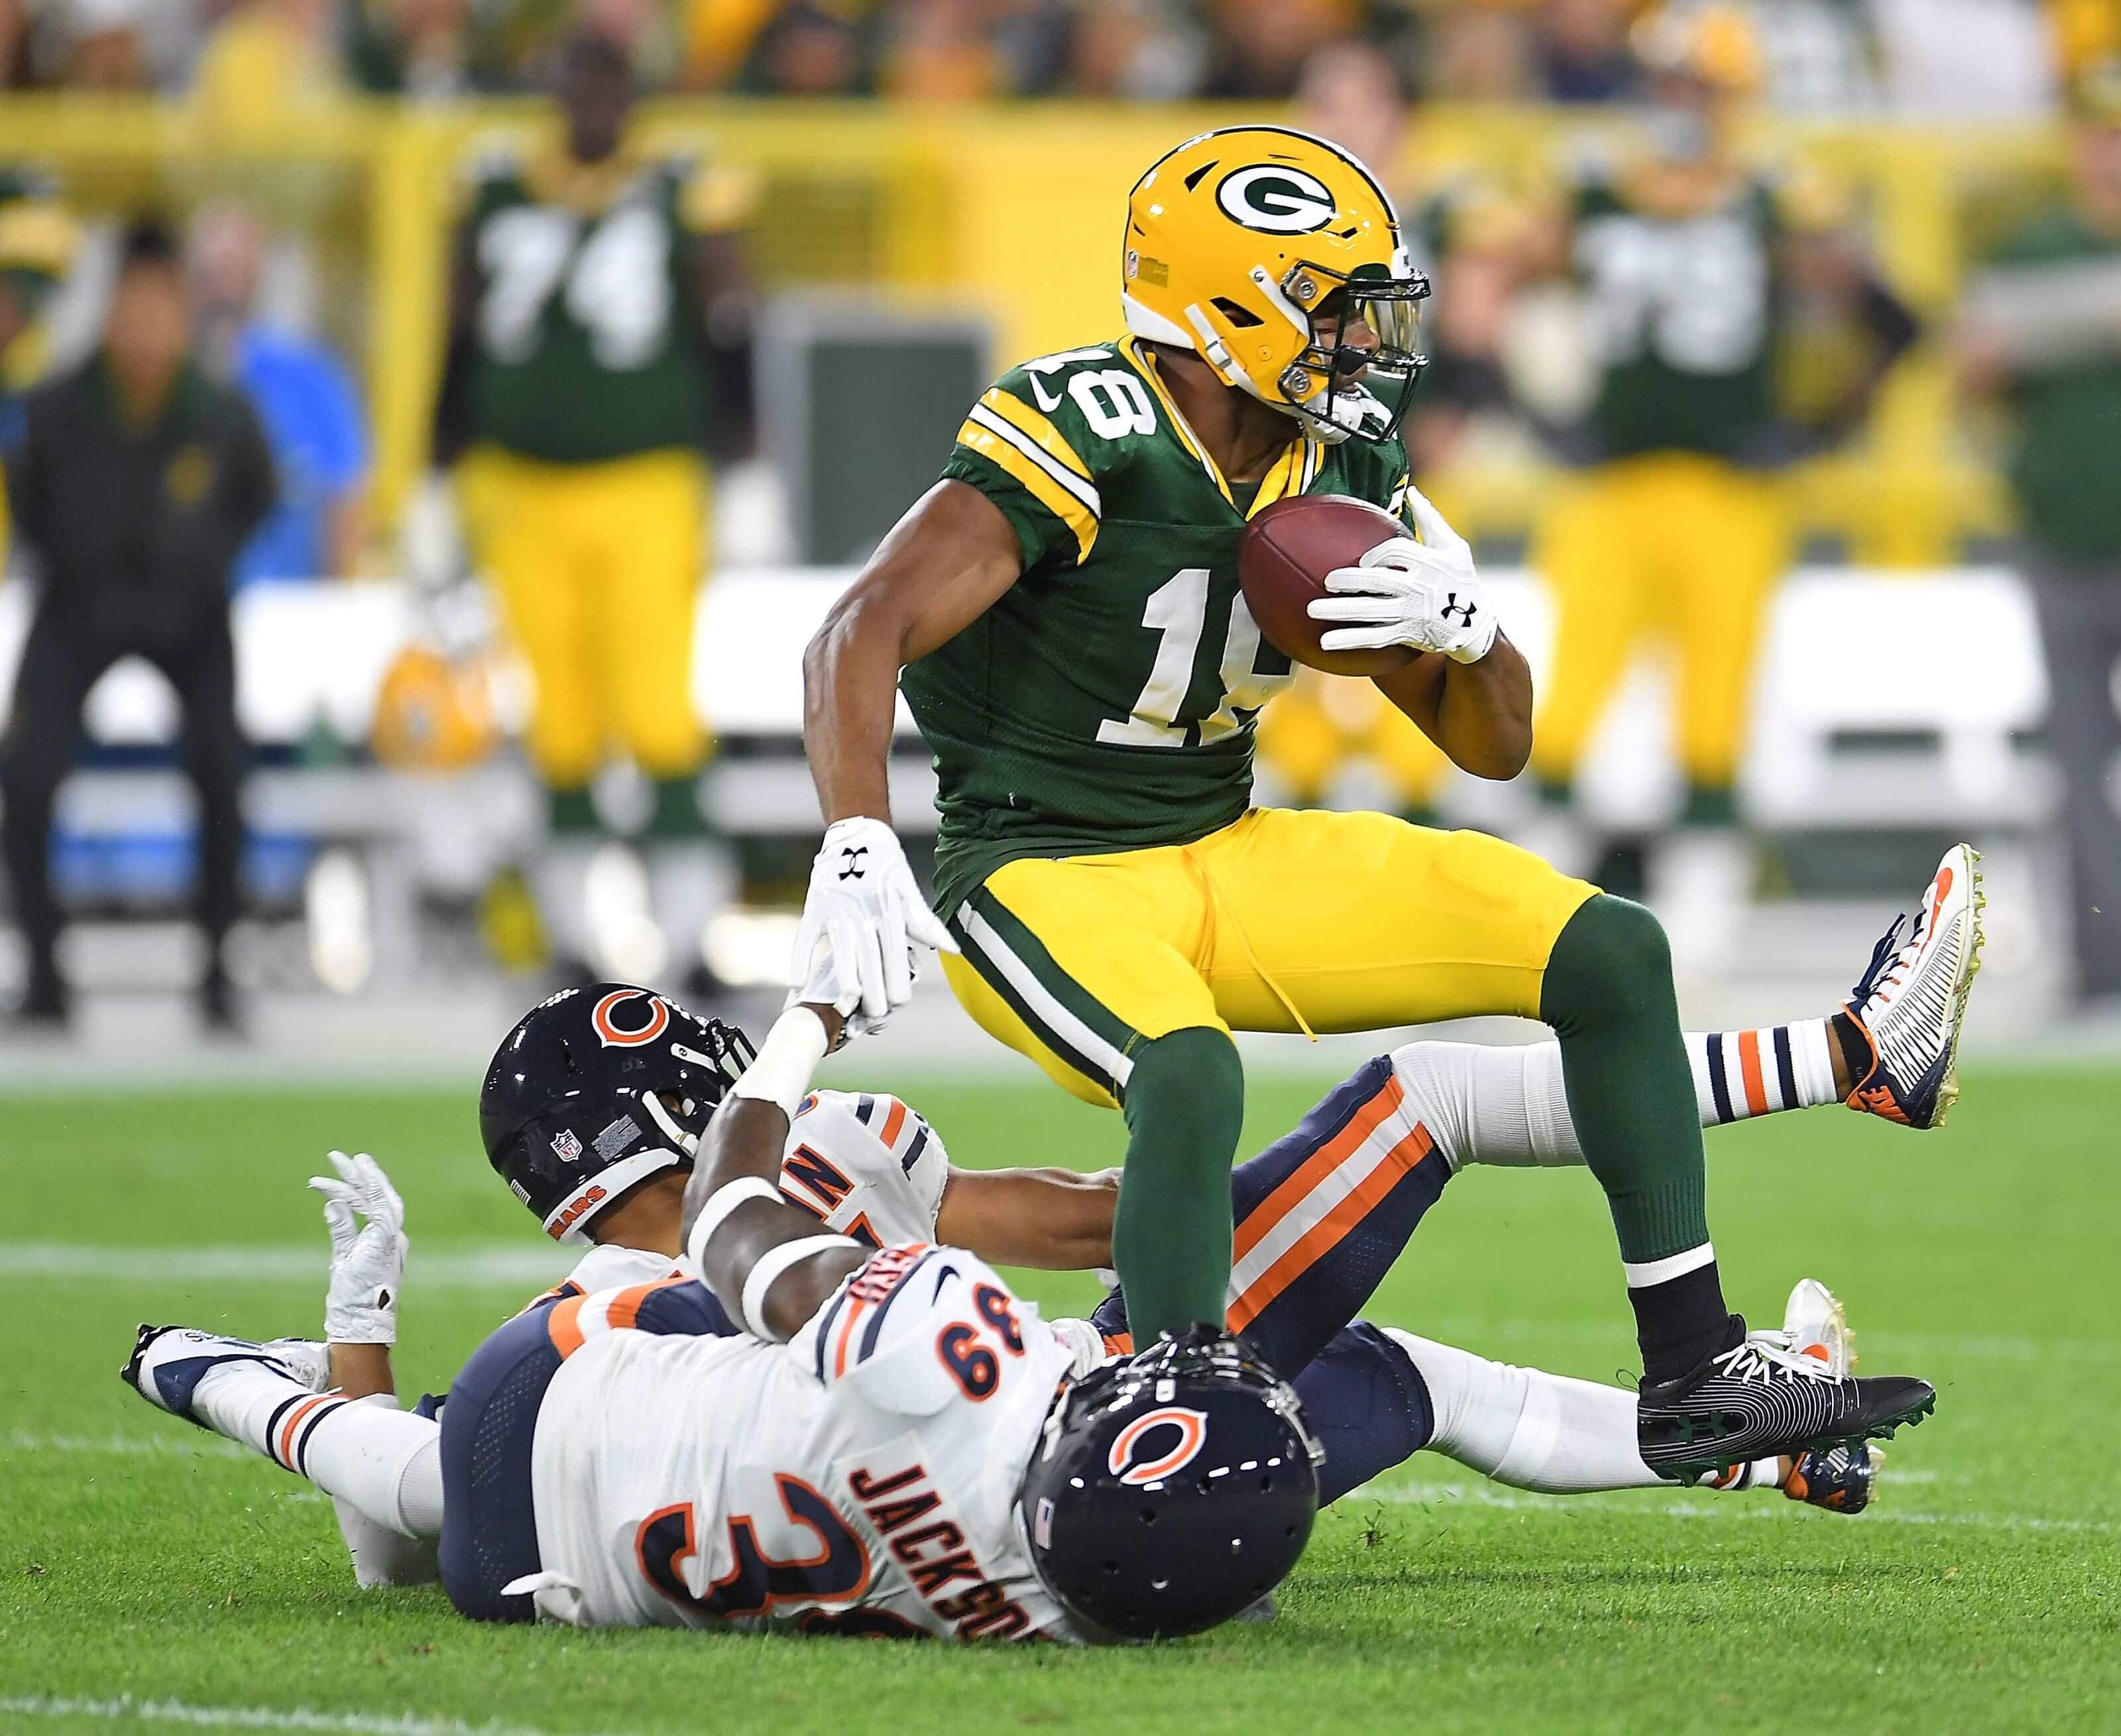 Packers vs Bears | Live Play-By-Play & Reactions - YouTube